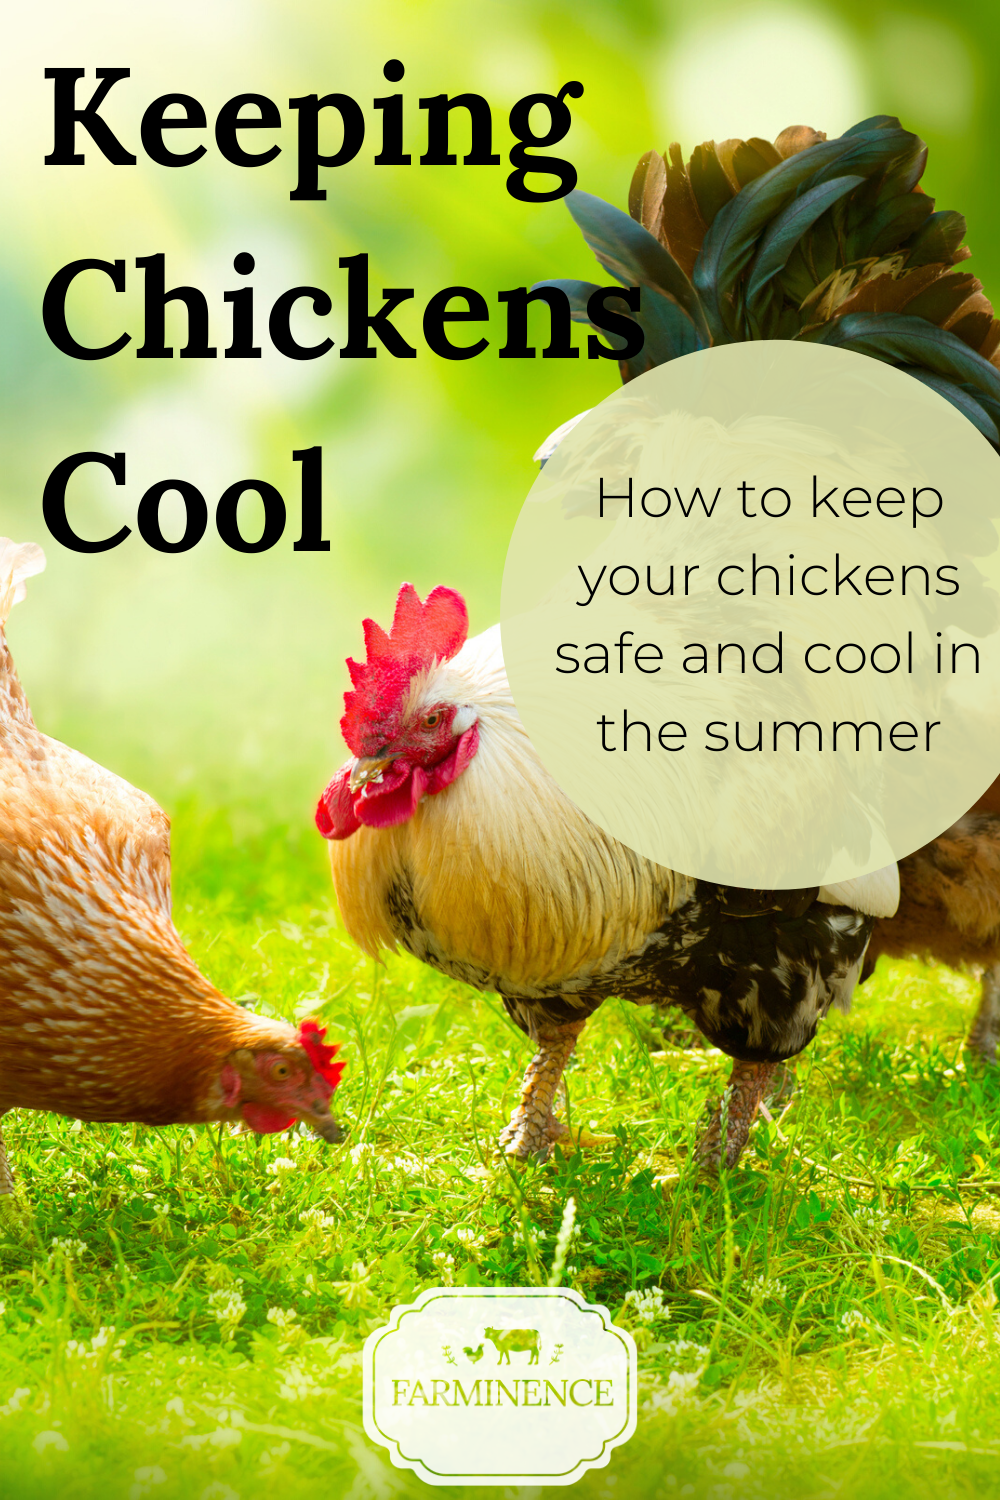 Keeping Chickens Cool in the Summer Tips to Safely Cool